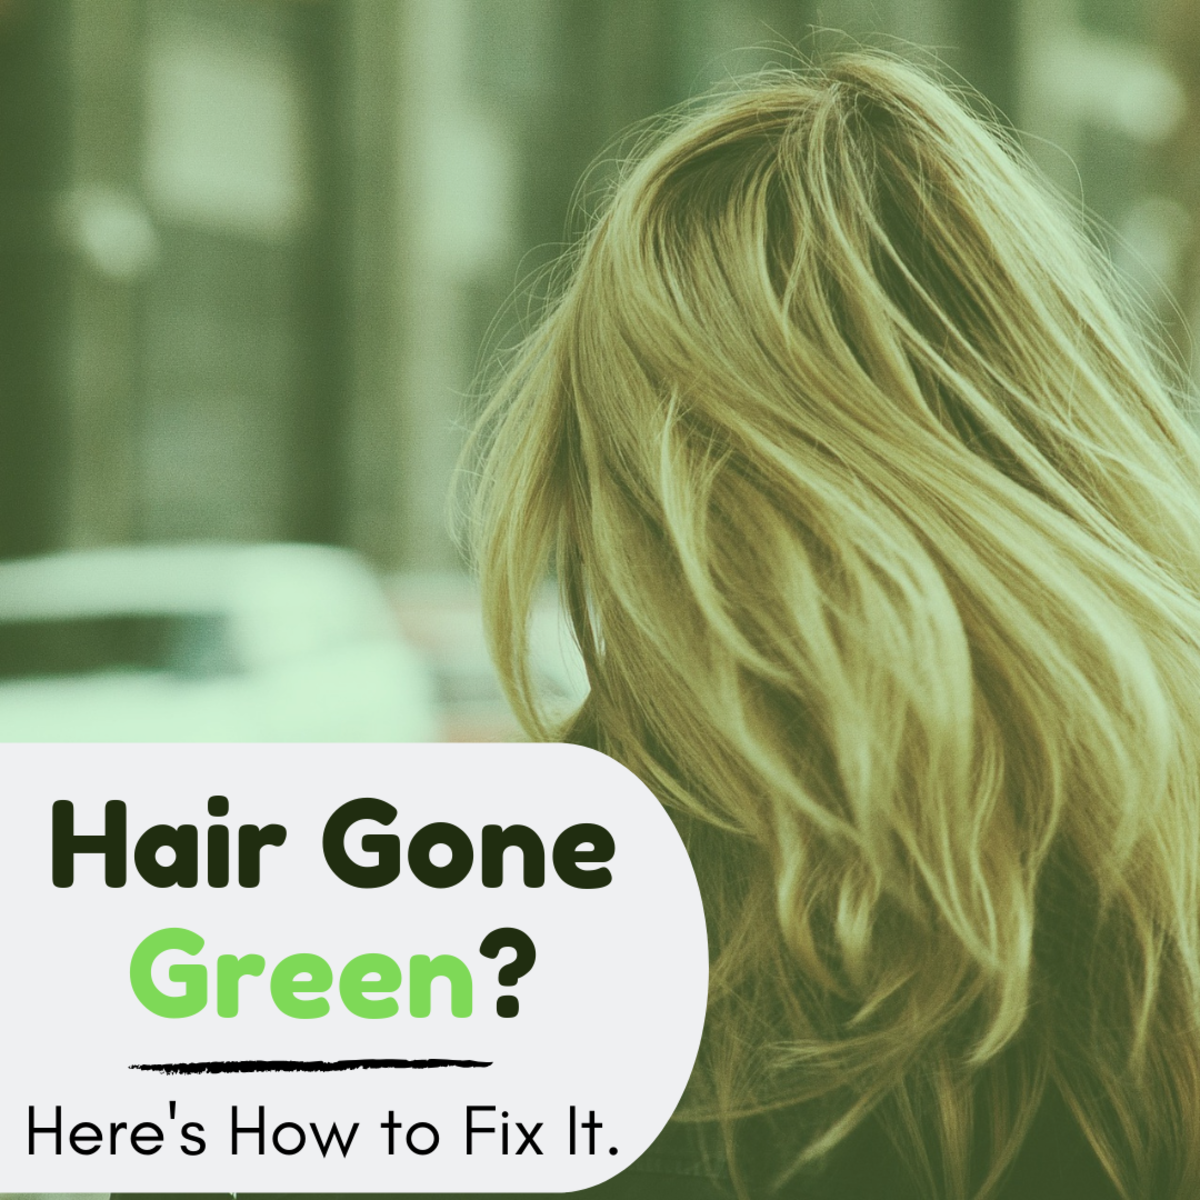 Whether it's a dye job gone wrong or one too many trips to the pool, accidental green hair is no fun! Luckily, it isn't too hard to get rid of.